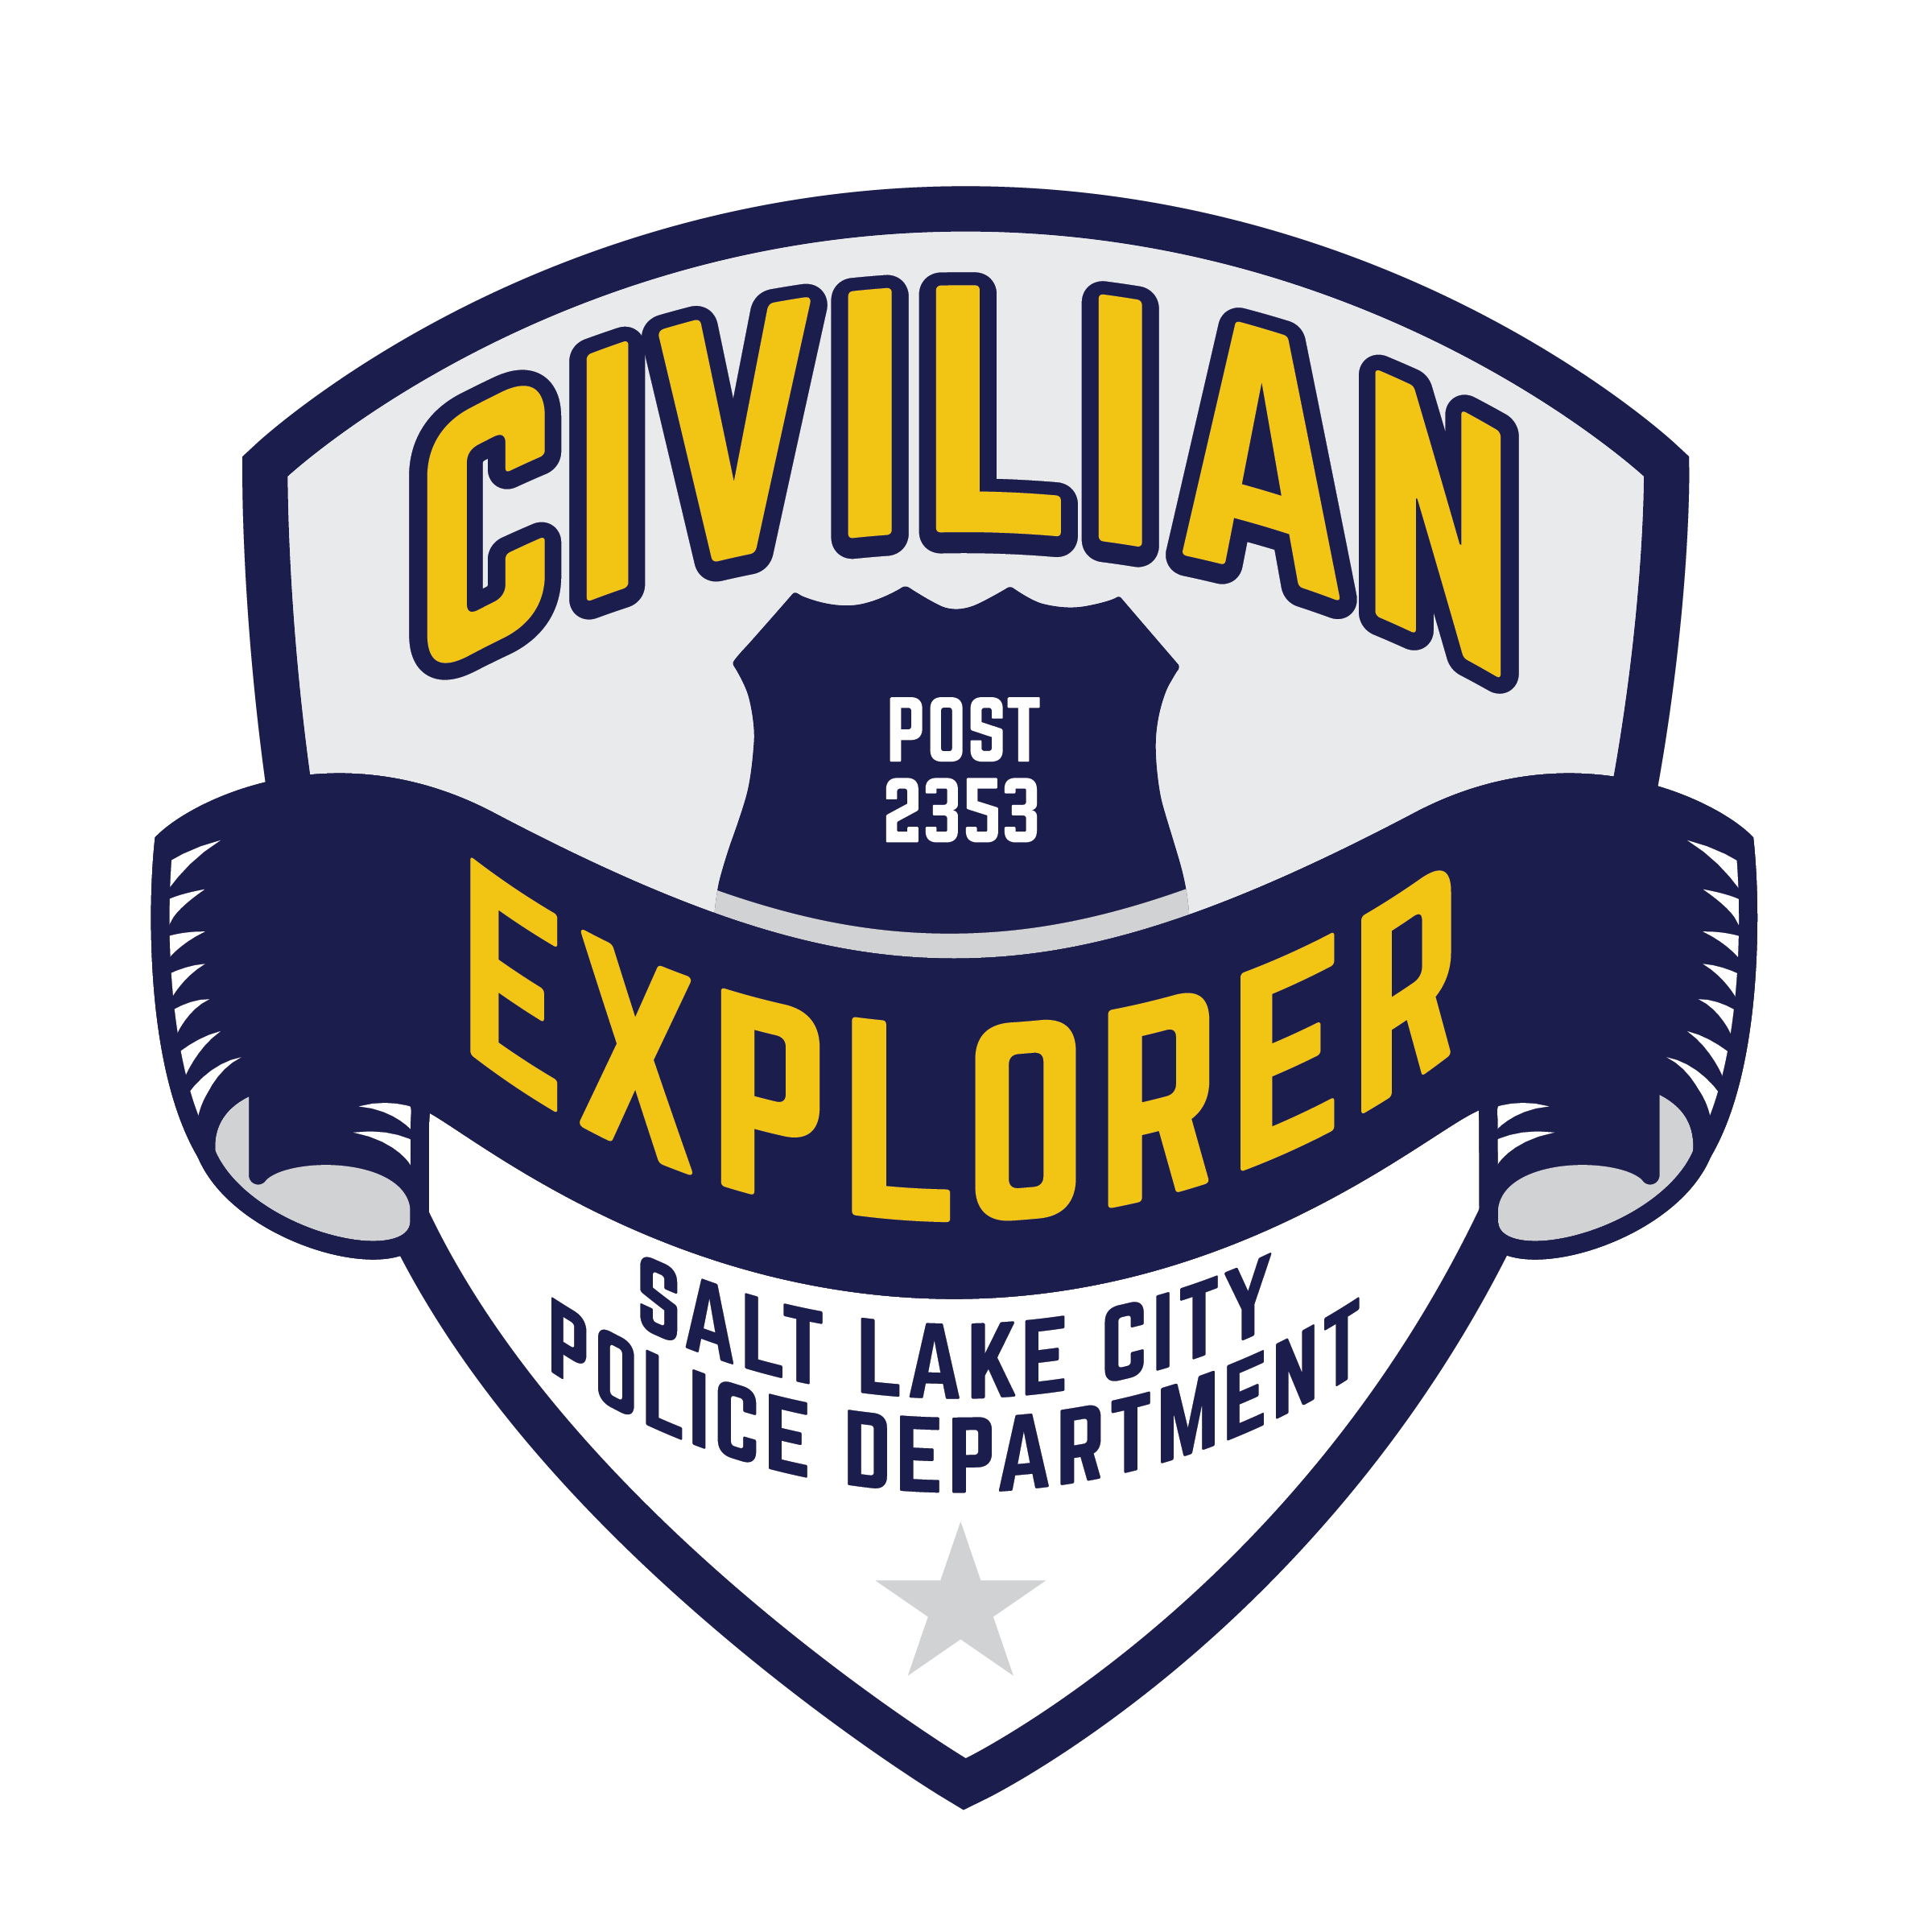 CivilianExplorer-01